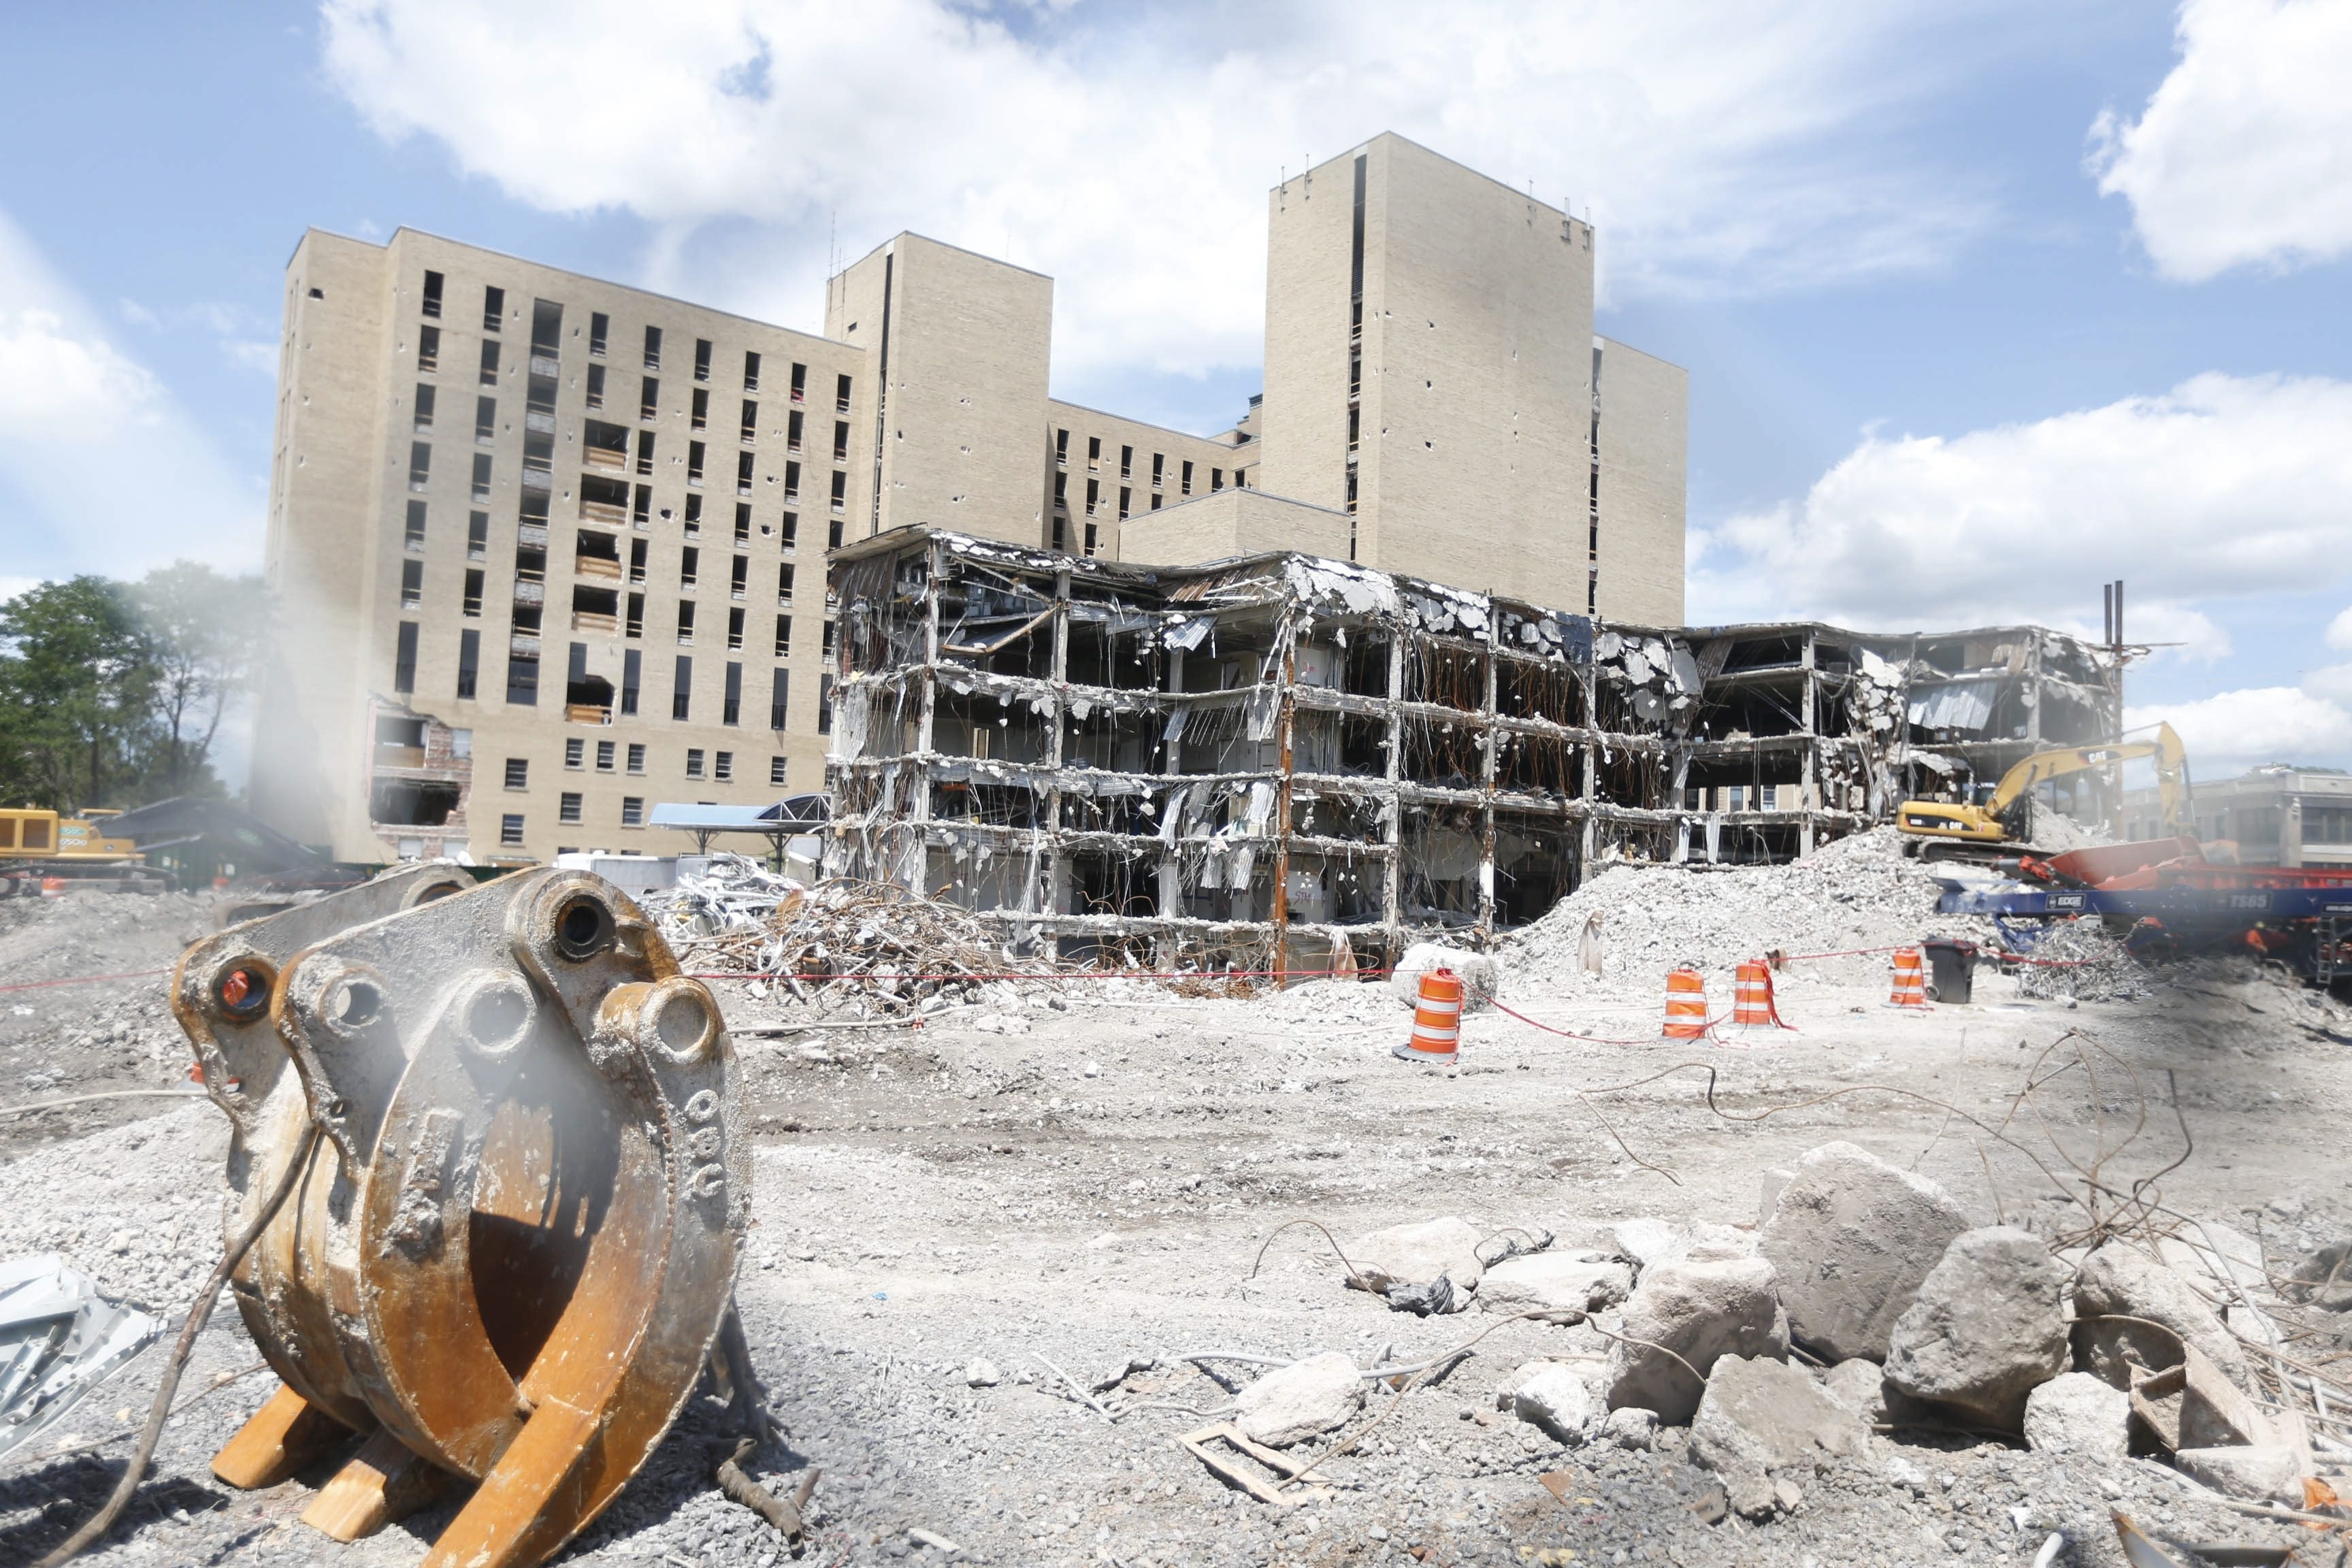 Plans for the site of the former Millard Fillmore Hospital at Gates Circle – which will most likely be demolished in late summer or early fall – include residential units, a fitness center, an urban grocery store, a YMCA and office spaces.